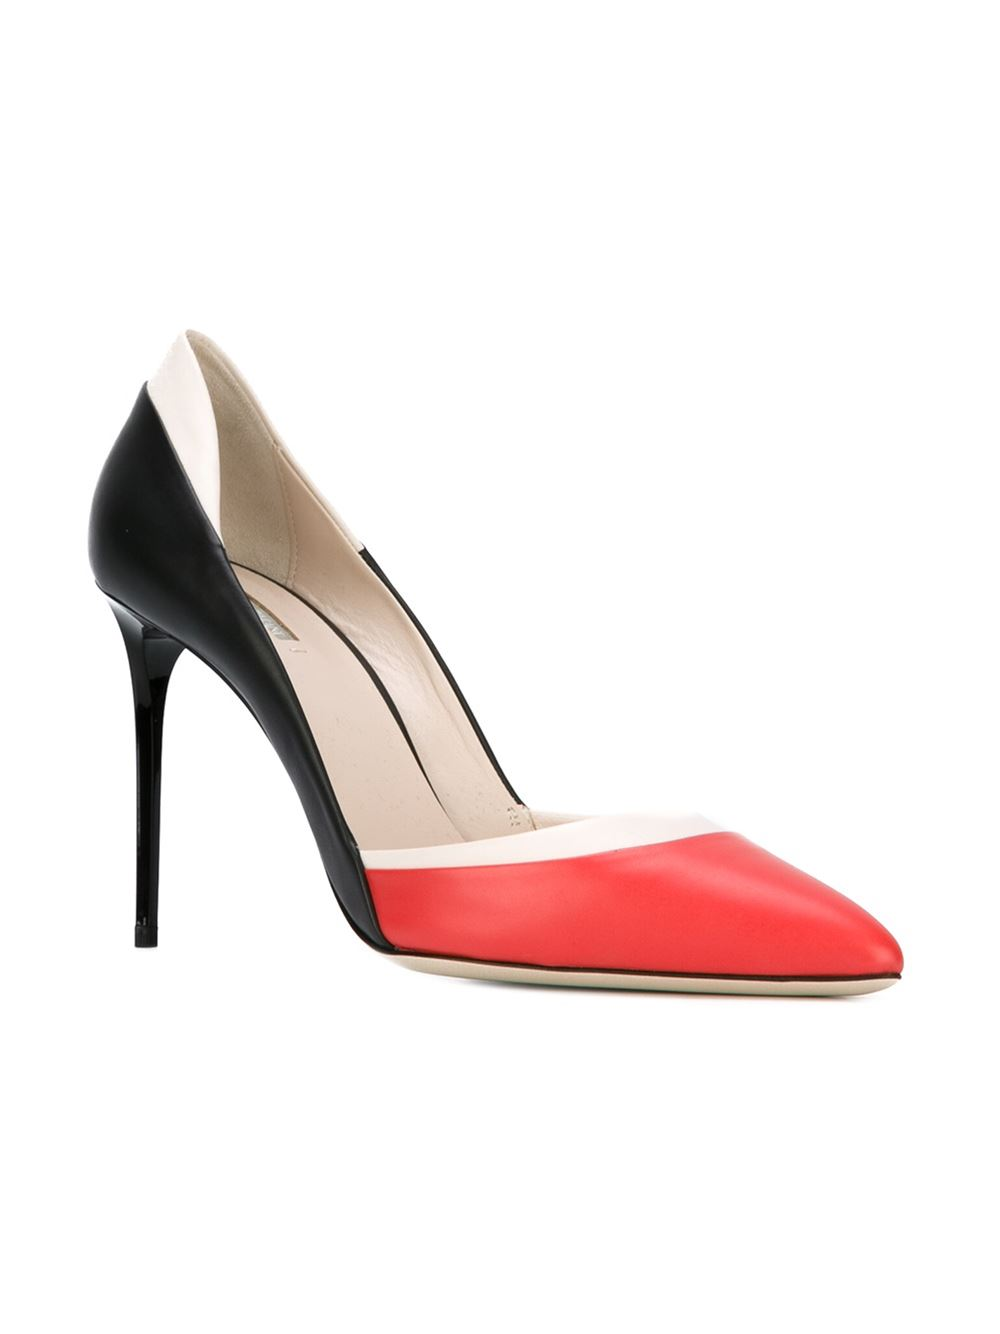 Giorgio Armani Color Block Pumps